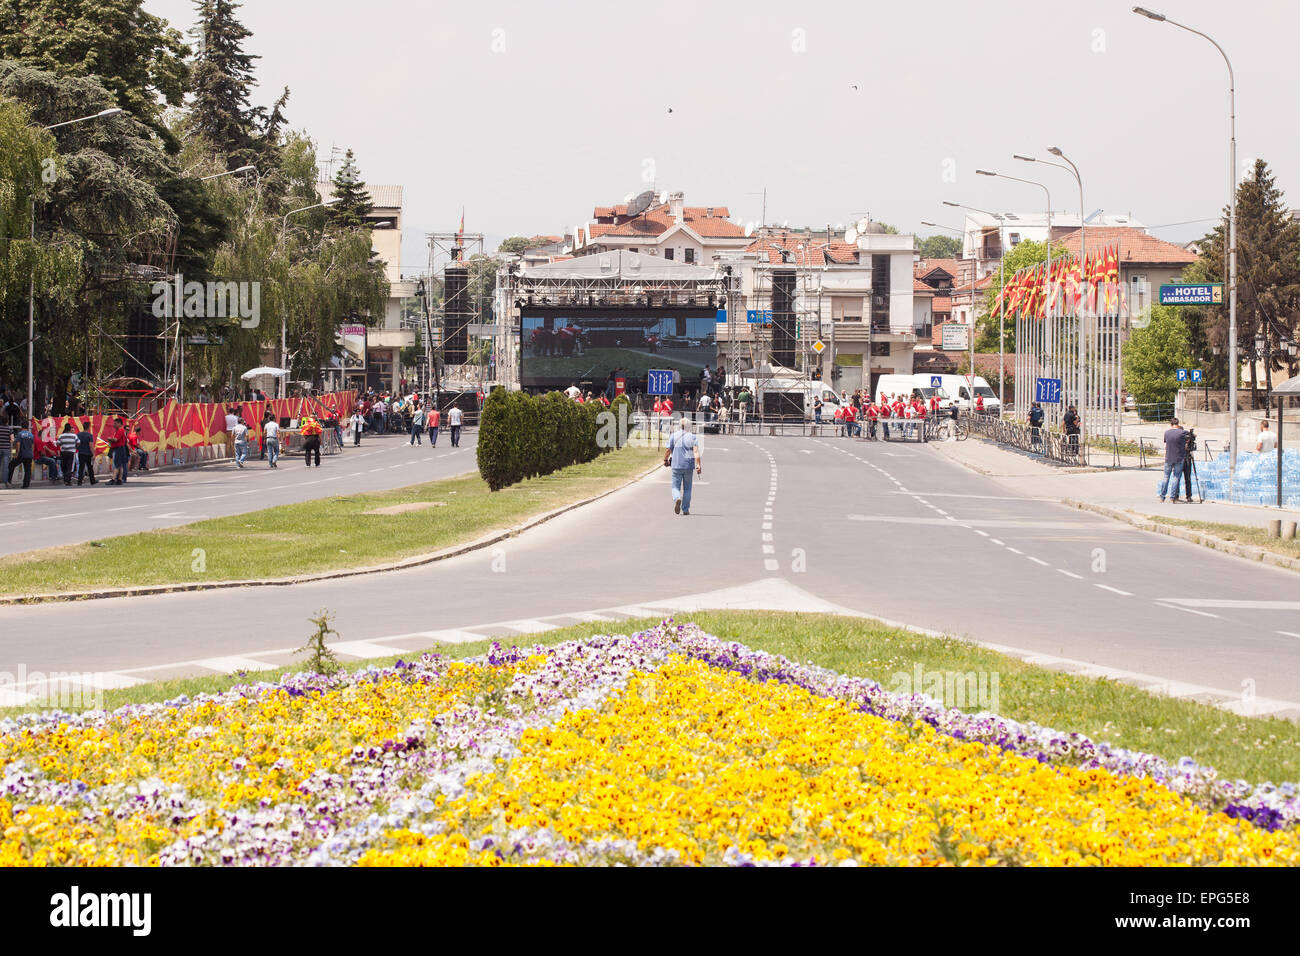 SKOPJE, MACEDONIA - MAY 17 2015: Preparations for massive multietnical protests against the government, after the - Stock Image